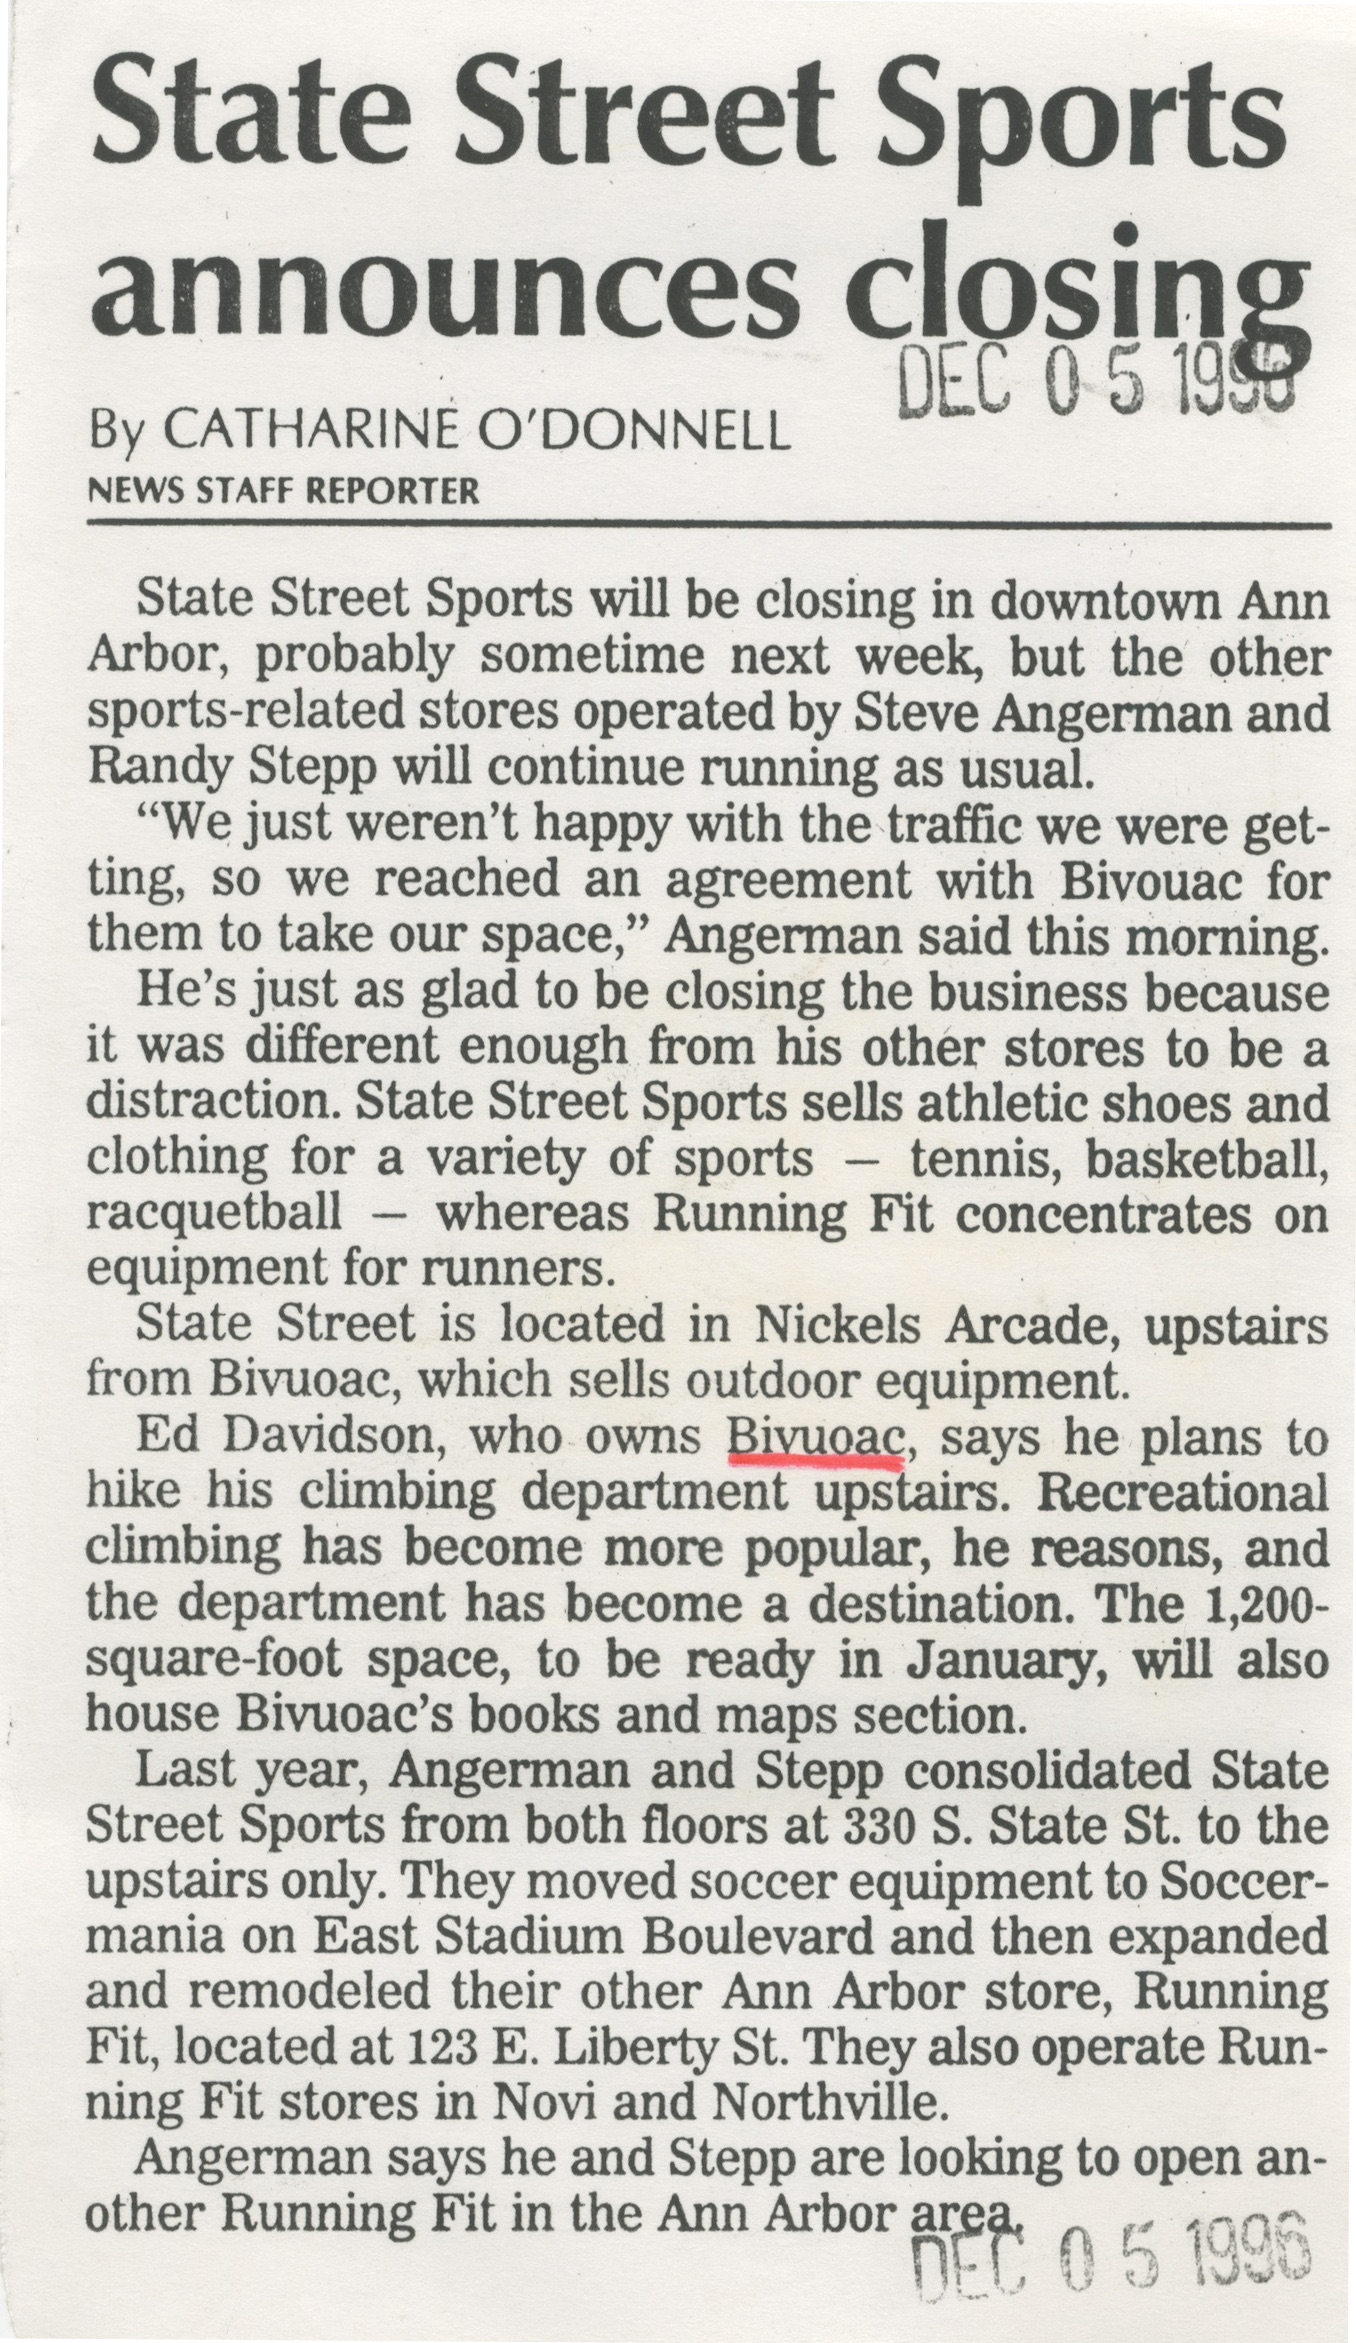 State Street Sports Announces Closing image